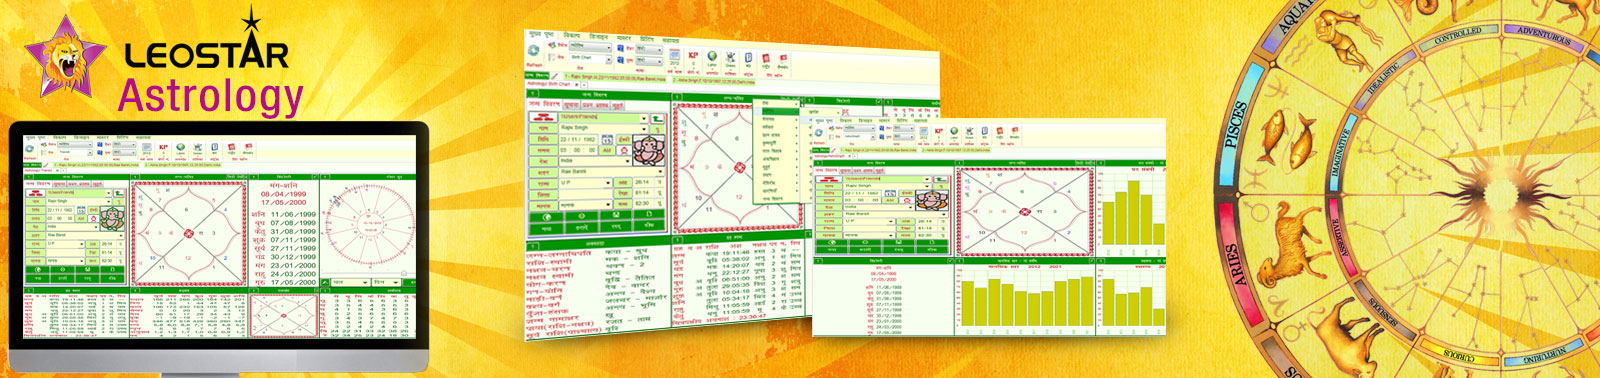 Best astrology software for students & Professionals